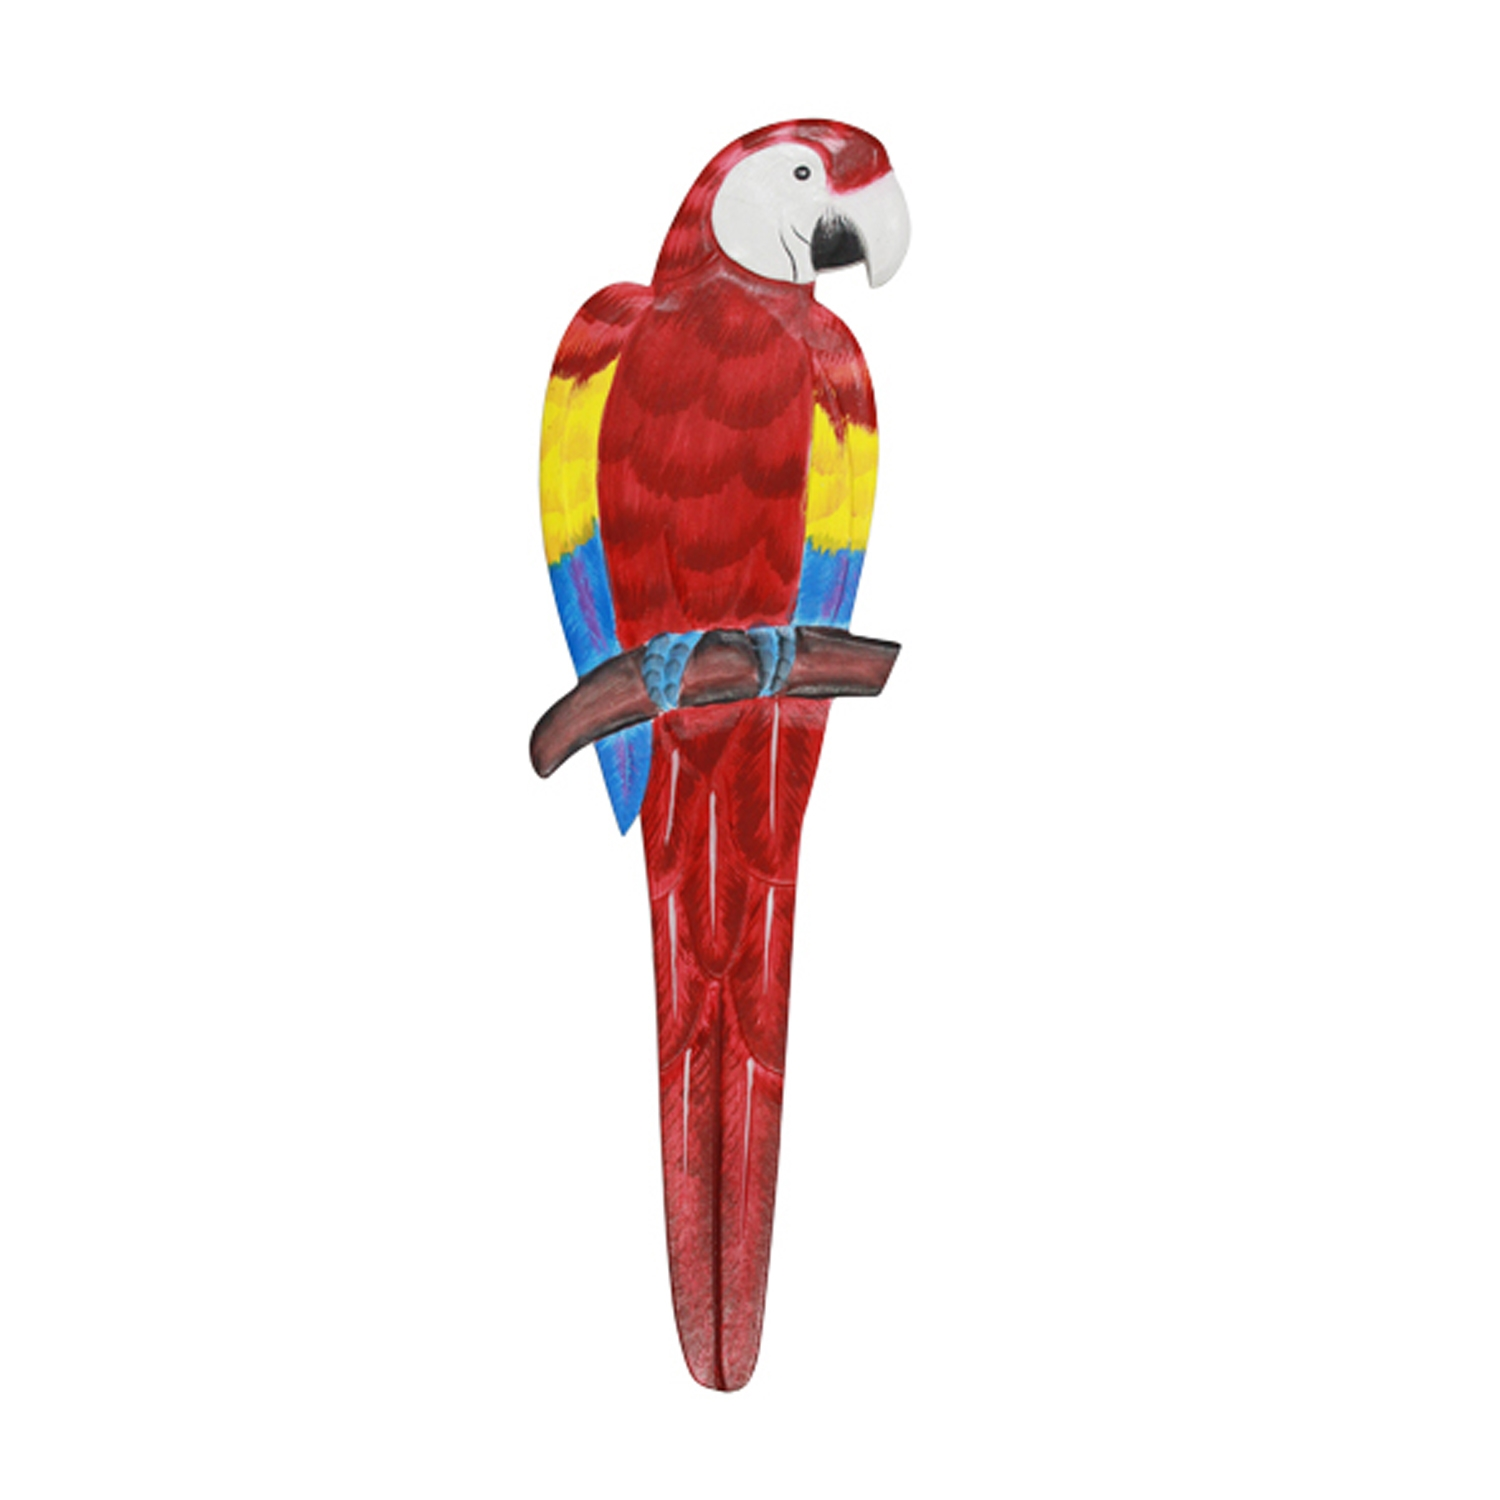 Wood Red Parrot Wall Decor